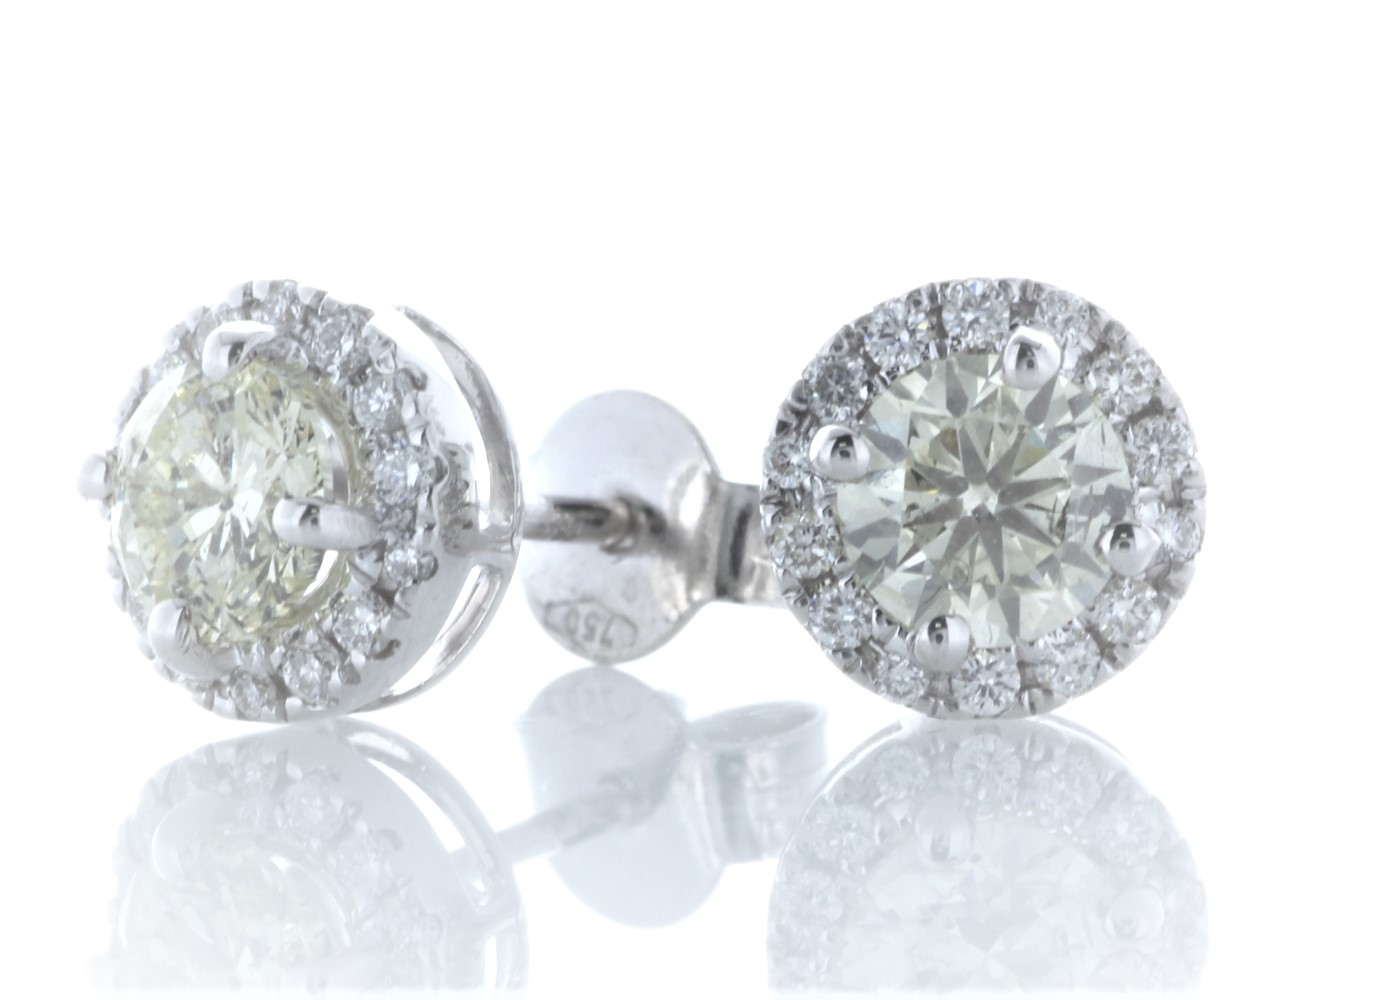 18ct White Gold Halo Set Earrings 1.29 Carats - Image 2 of 3